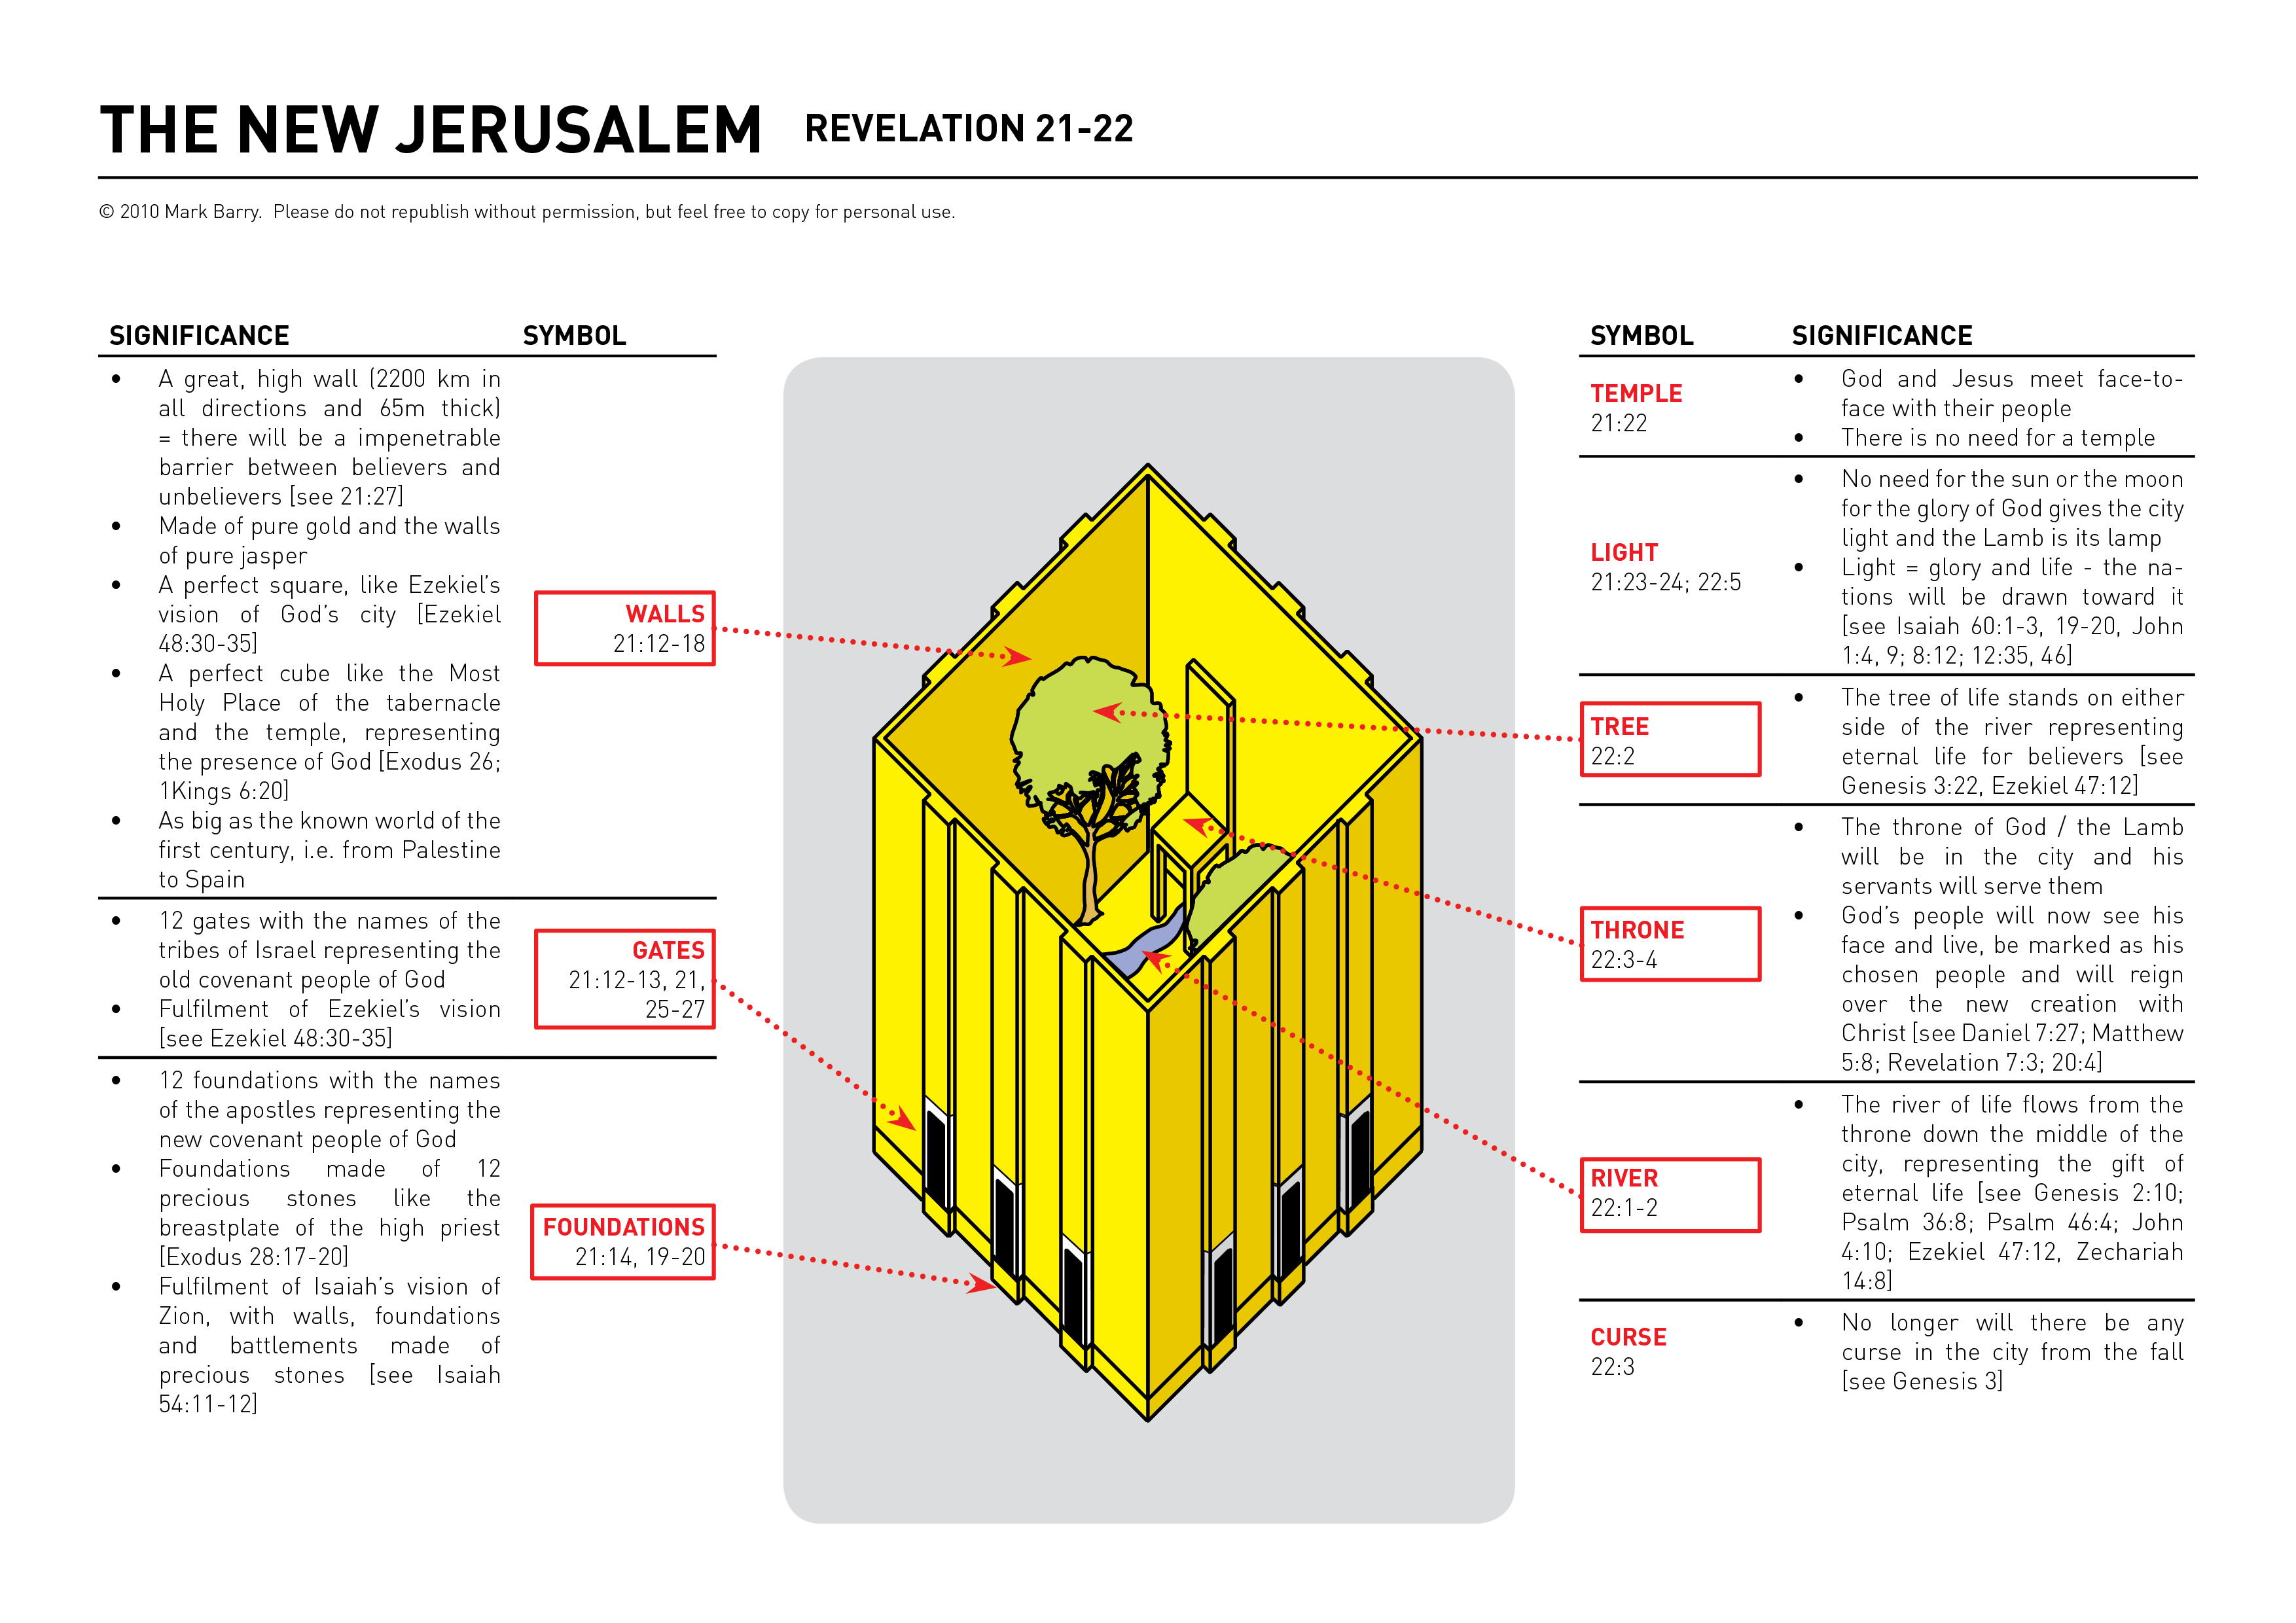 image The book of revelation 2006